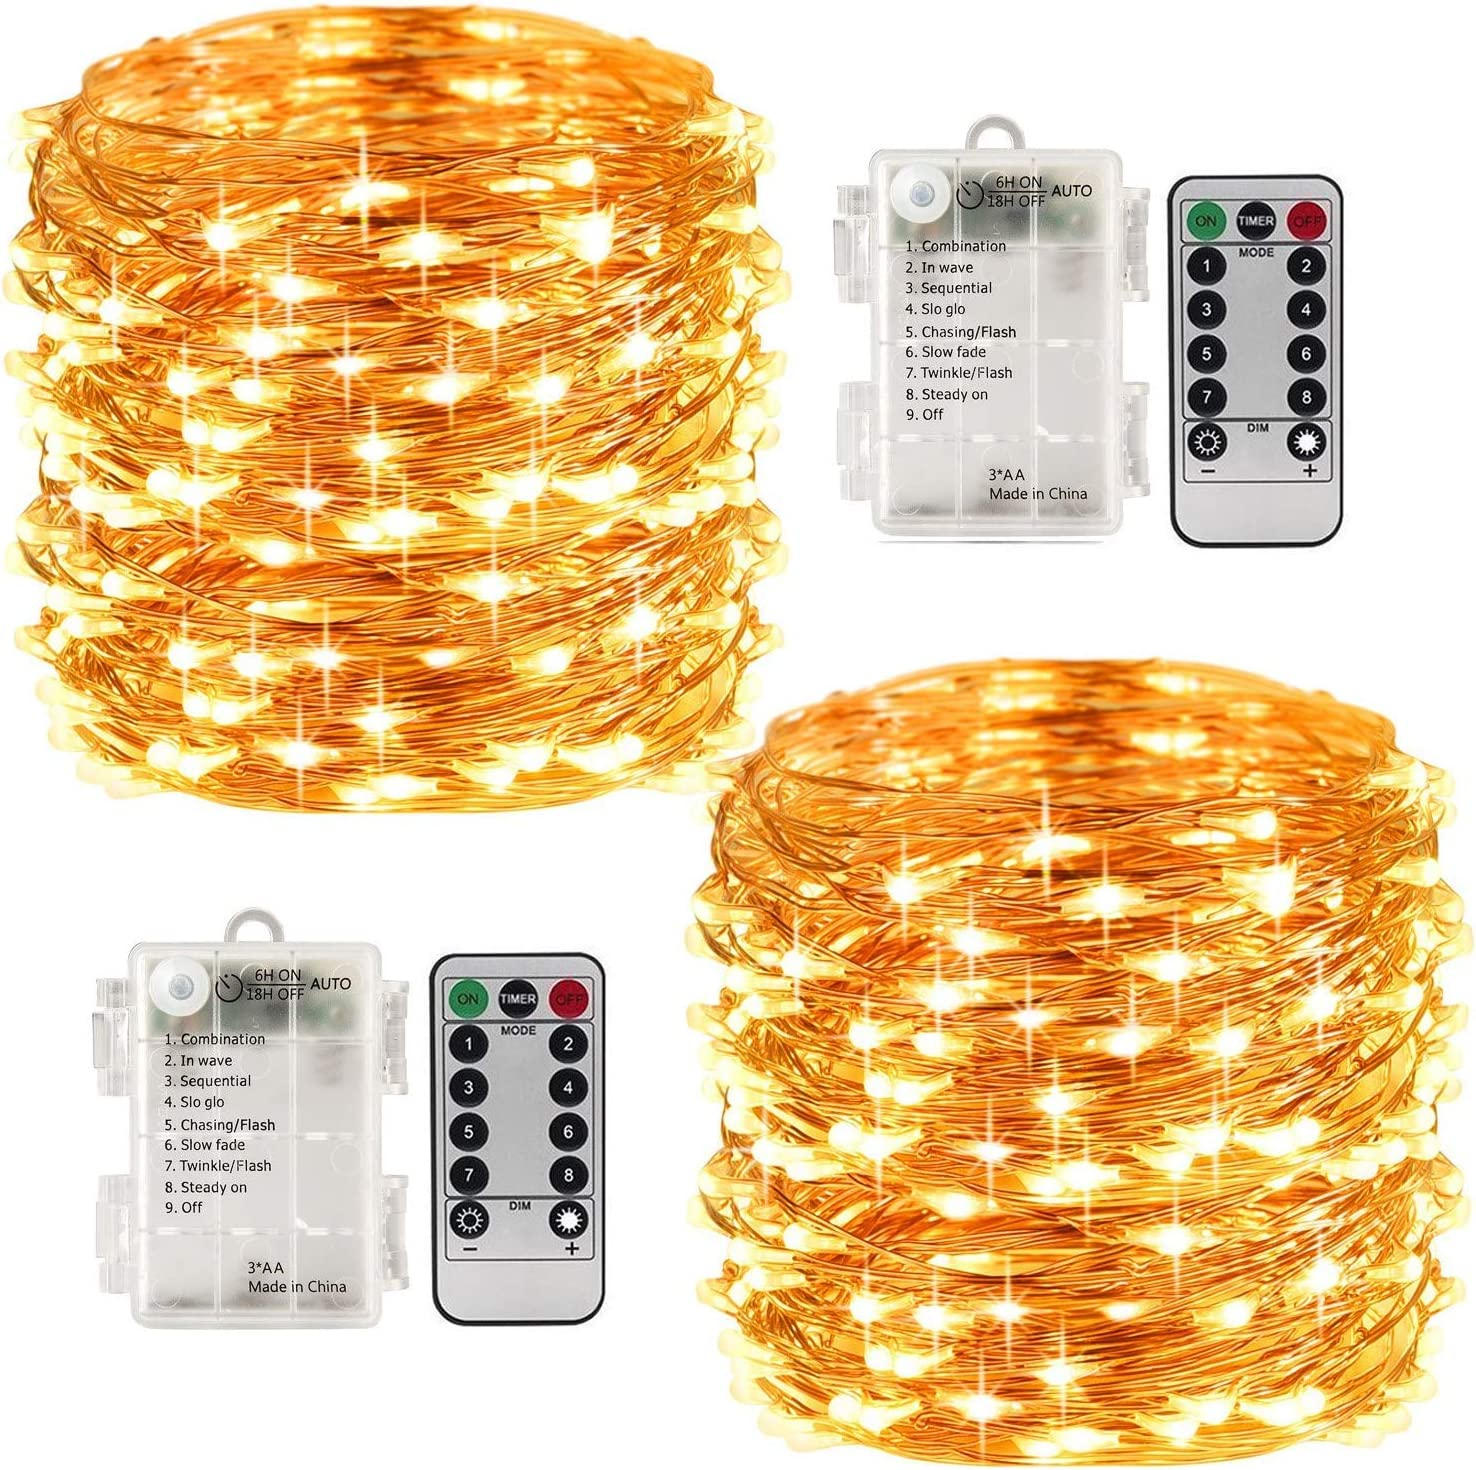 [2 Pack] Led Fairy Lights Battery Operated 33 Feet 100 Led Waterproof Copper Wire String Lights with Remote Control Timer for Bedroom Indoor Outdoor Wedding Decor Warm White